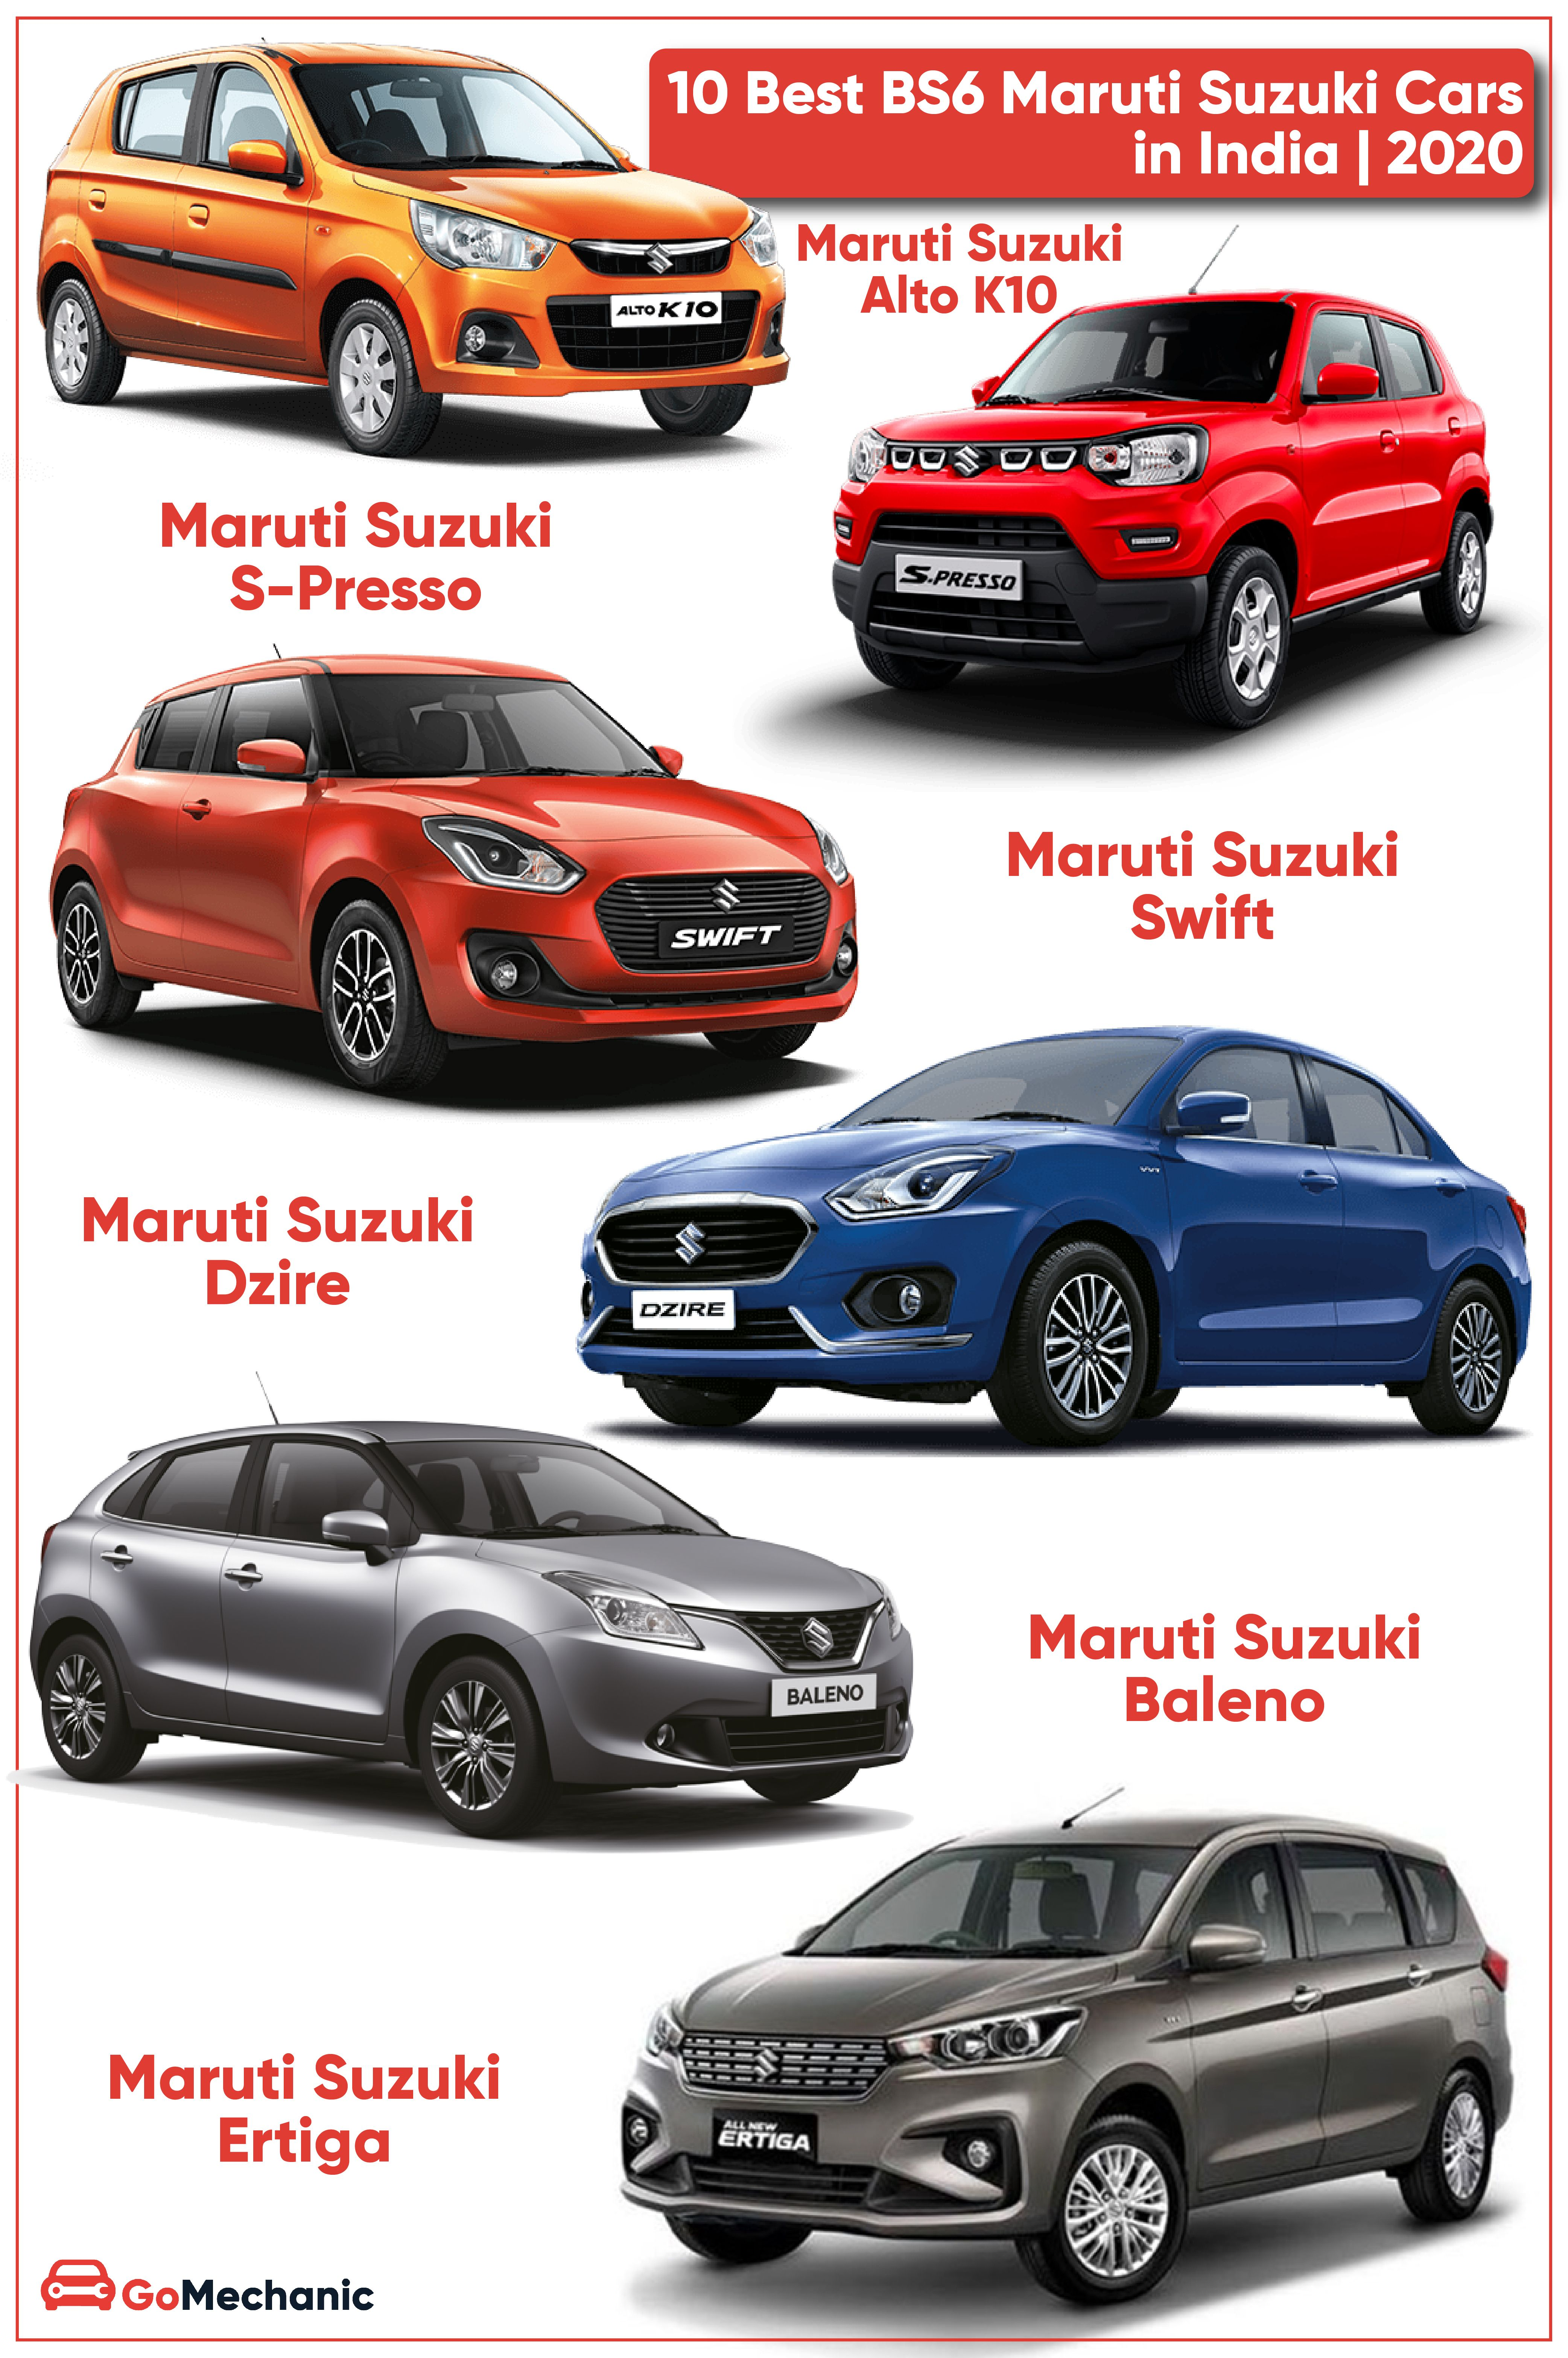 10 Best BS6 Maruti Suzuki Cars in India You Can Buy Right